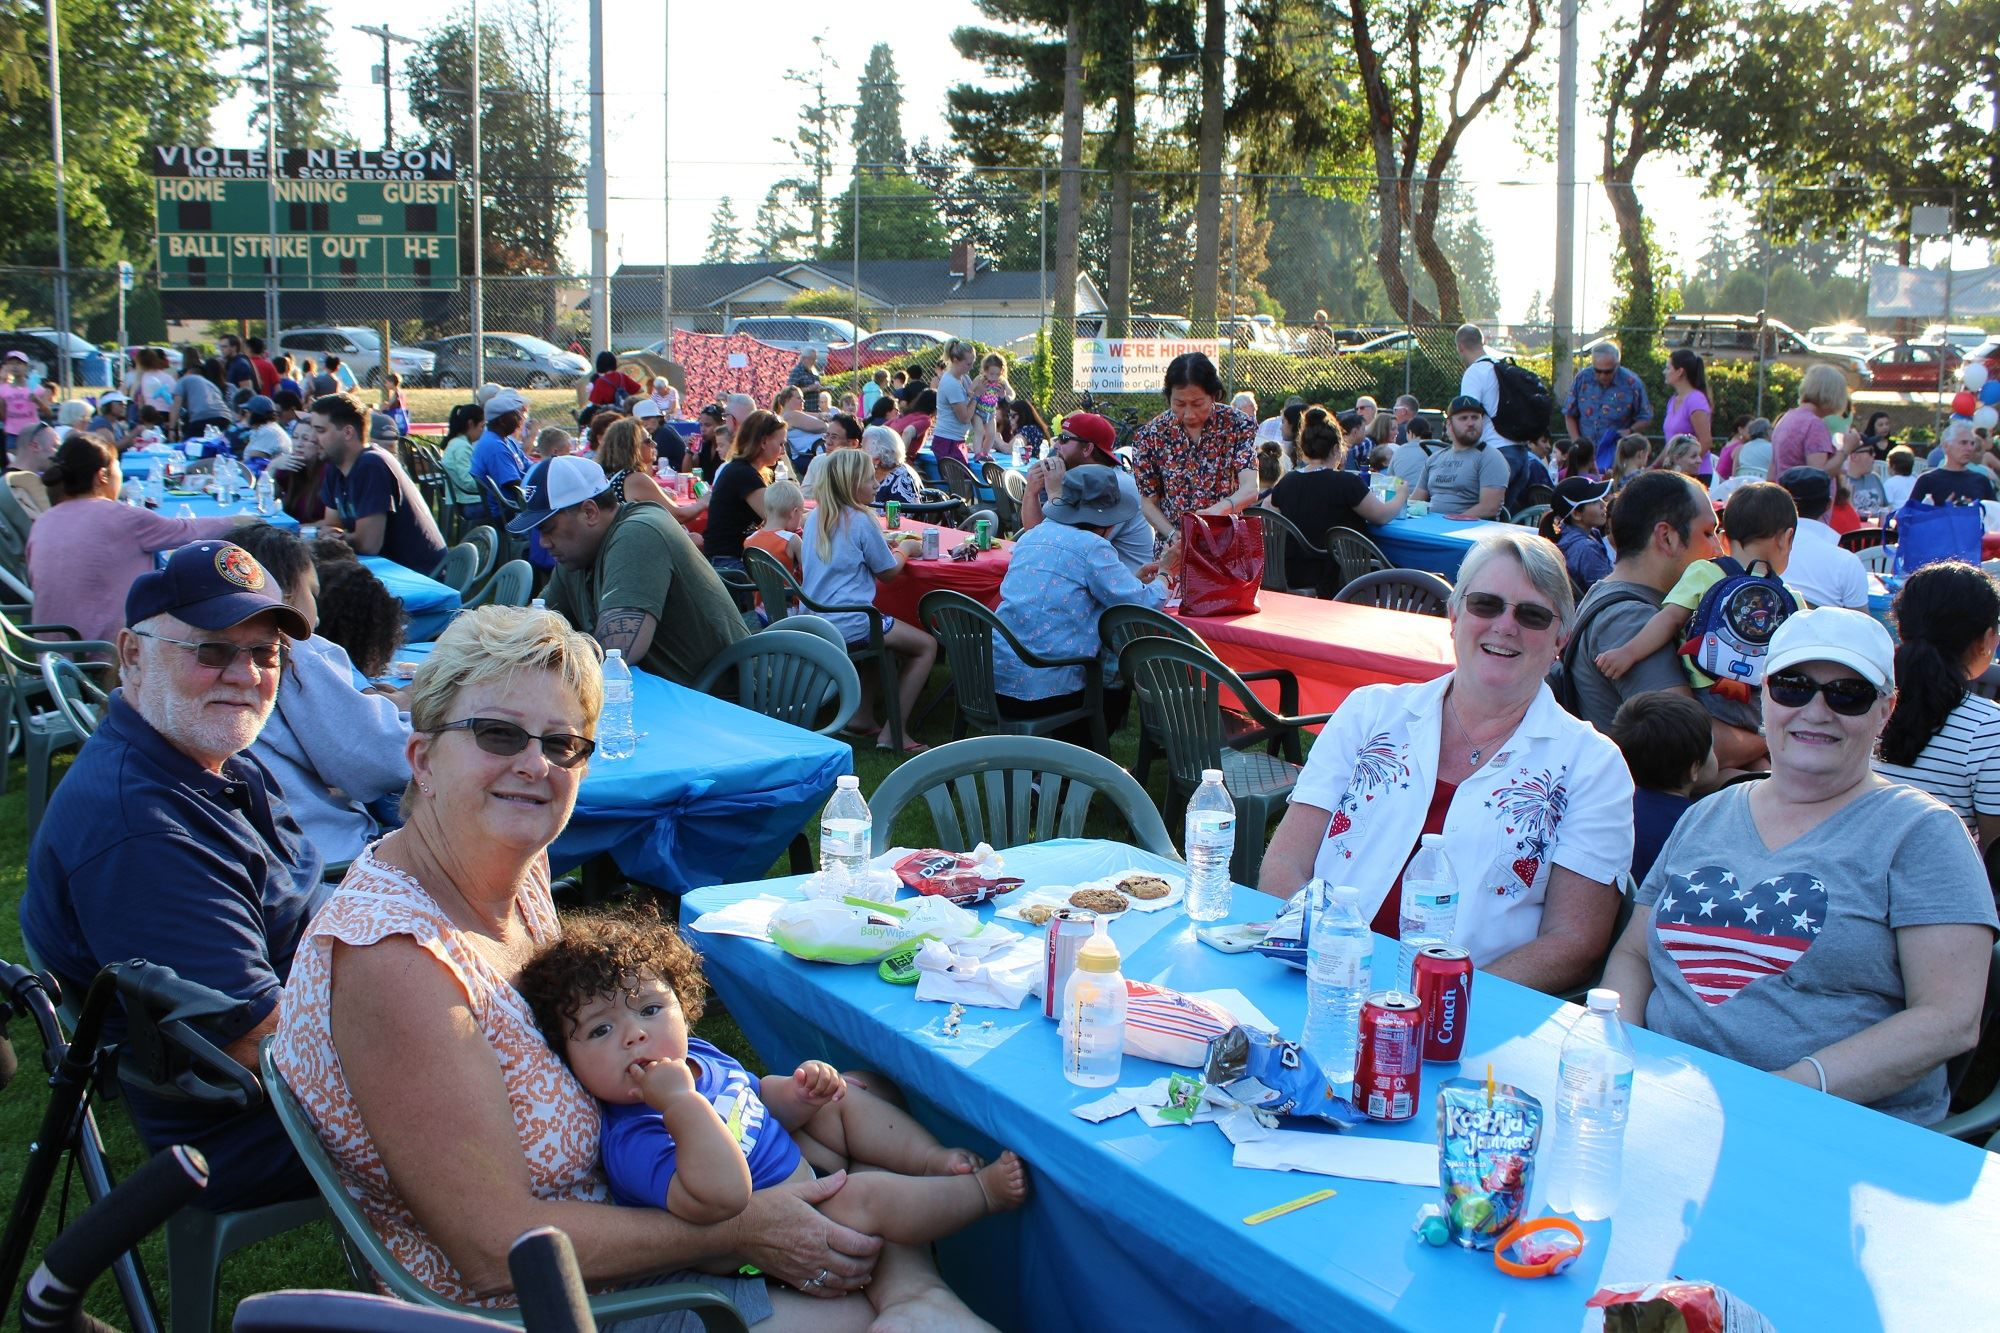 National Night Out Crowd Enjoying Food and Entertainment